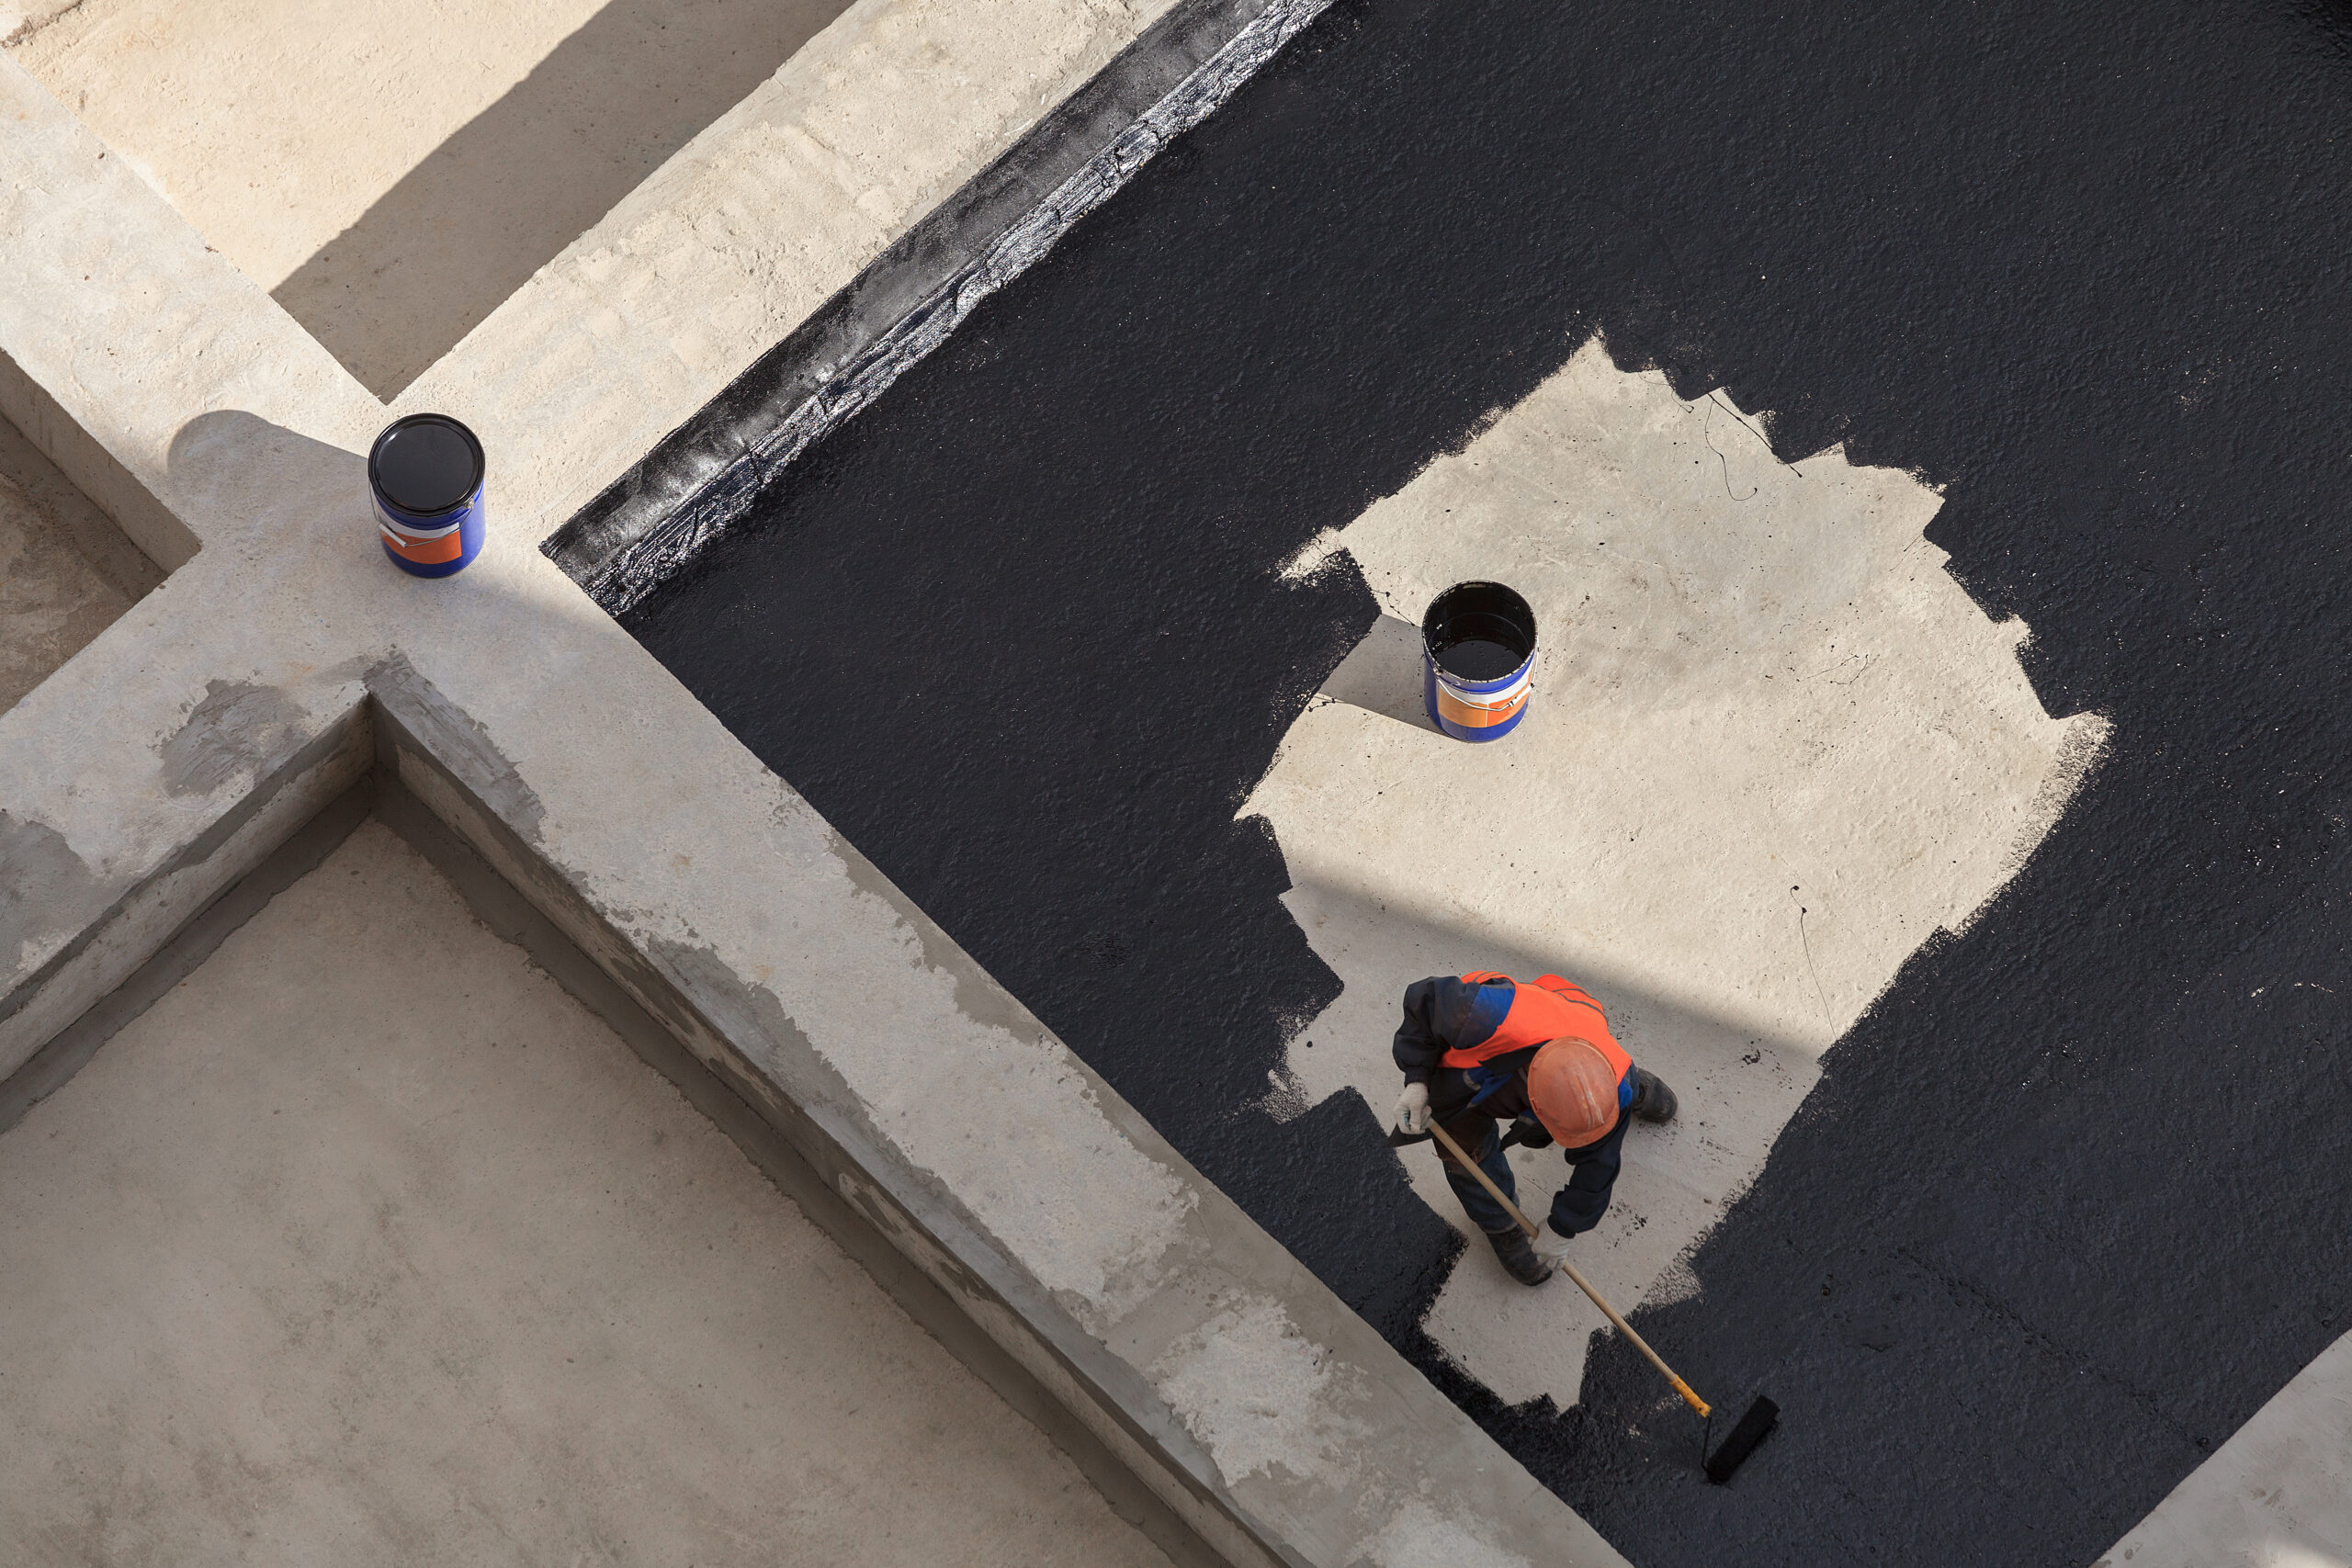 The worker in overalls applies an insulation coating on the concrete surface. View from above.